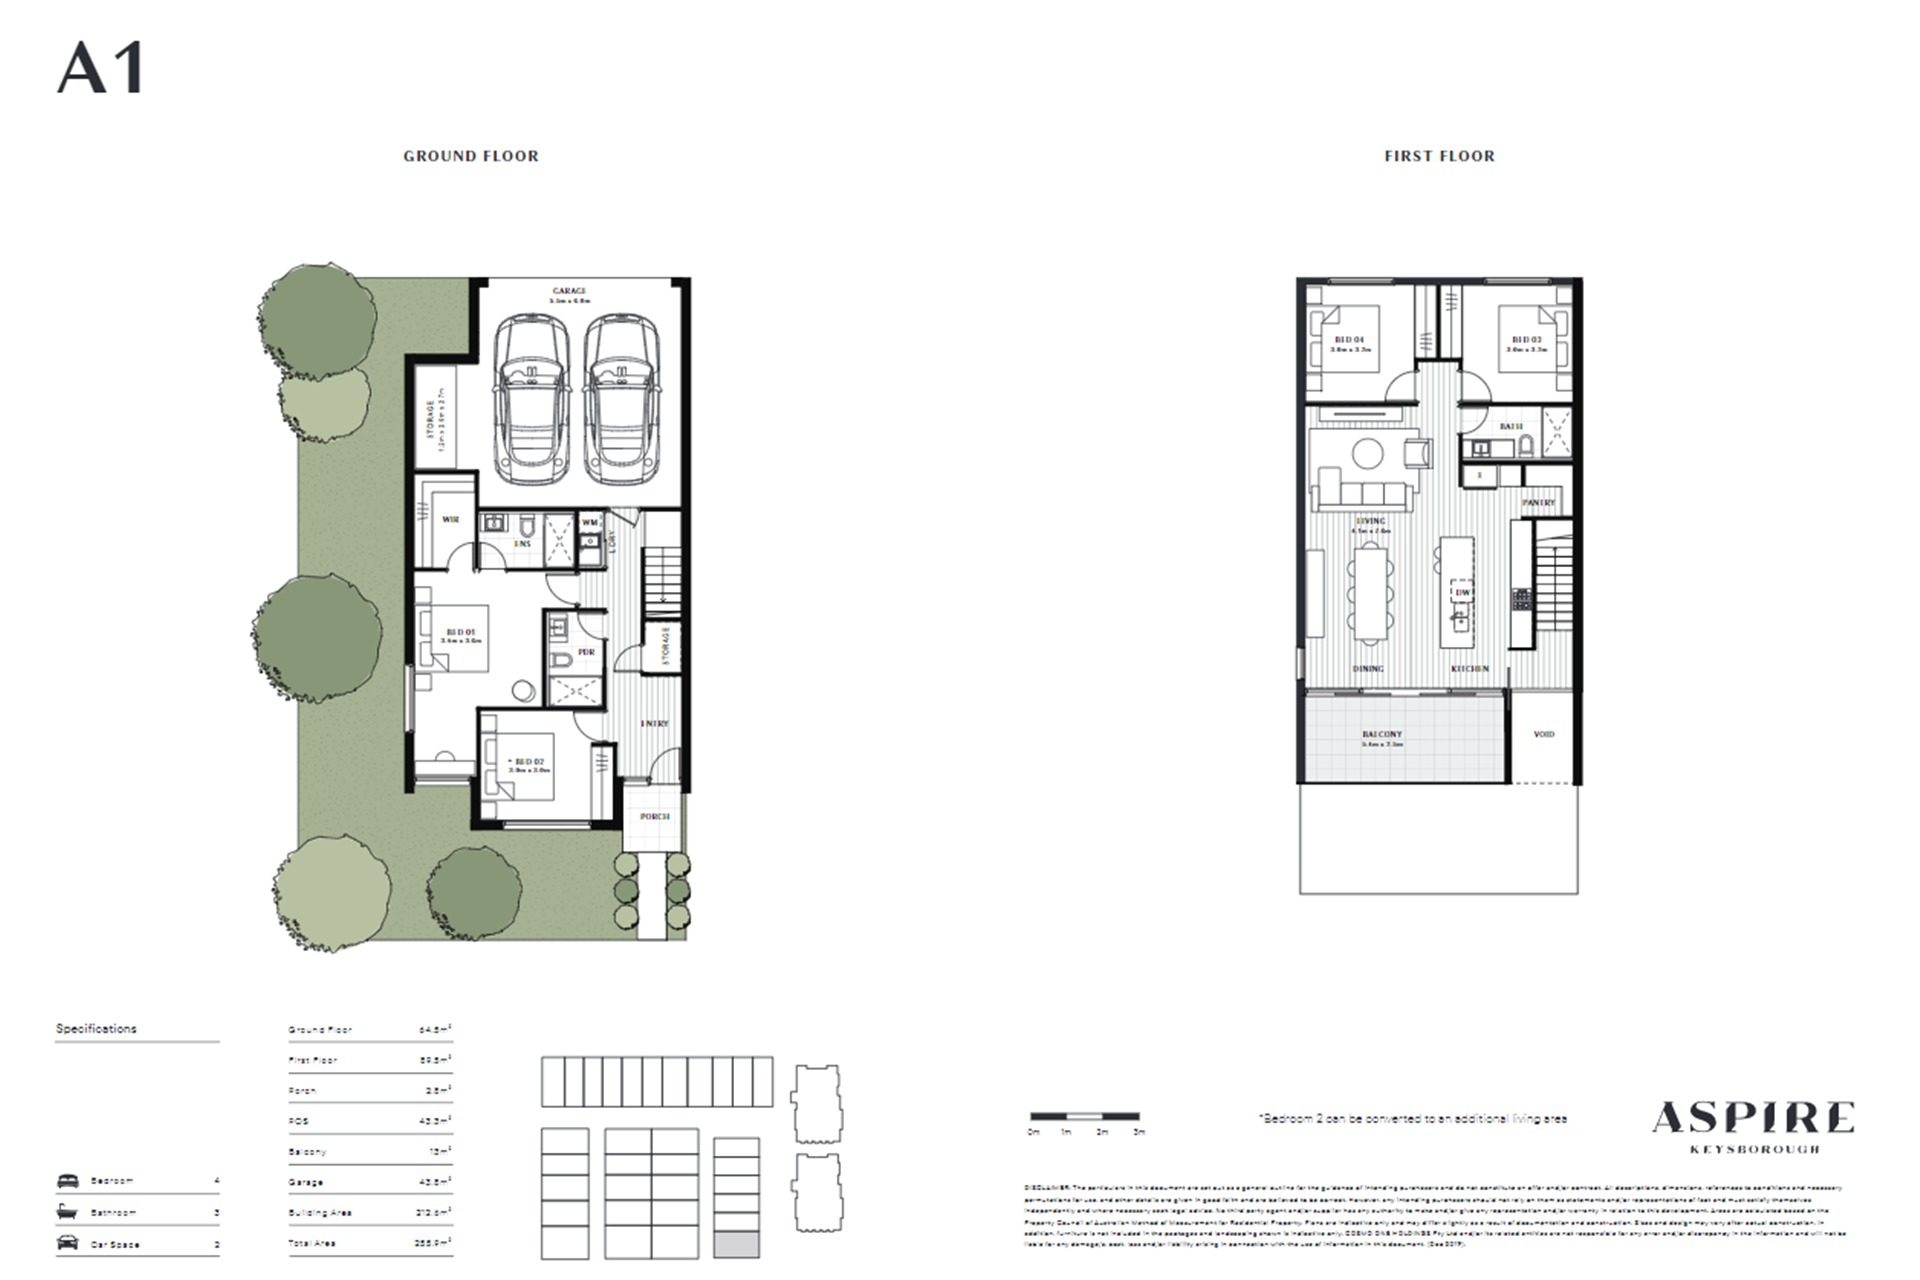 Aspire   A1 Floor Plan (Apartment)